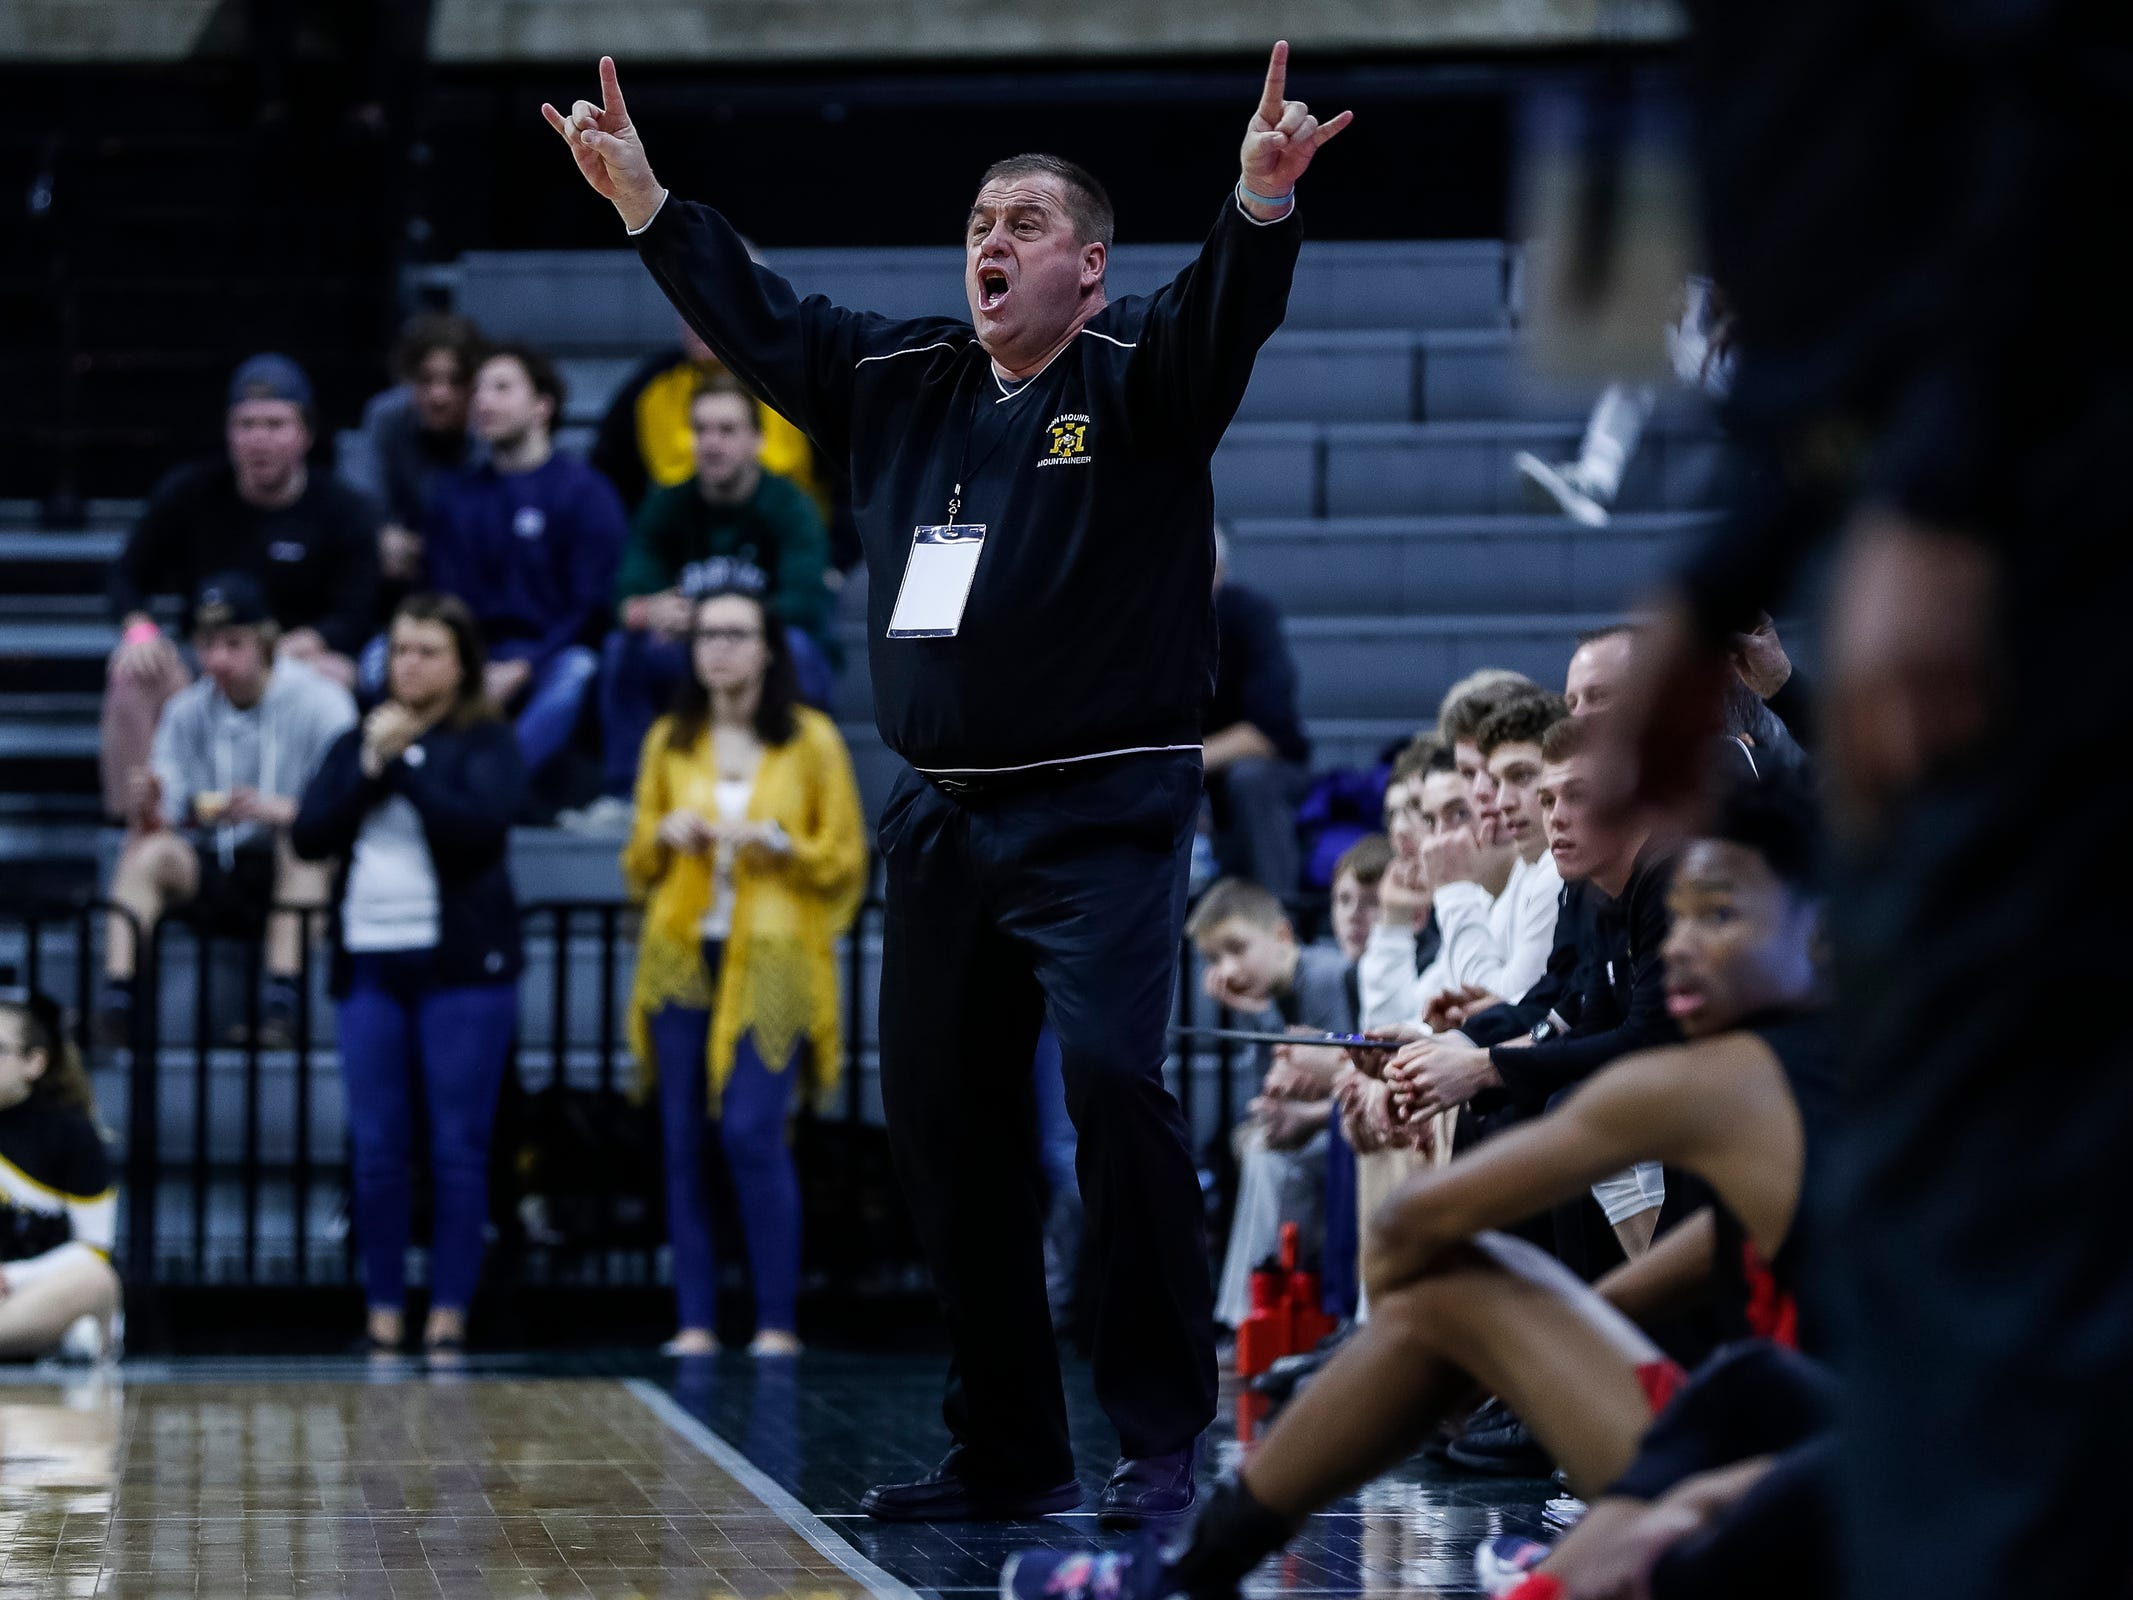 Iron Mountain head coach Harvey Johnson Jr. reacts to a play against Detroit Edison during the first half of MHSAA Division 3 semifinal at the Breslin Center in East Lansing, Thursday, March 14, 2019.